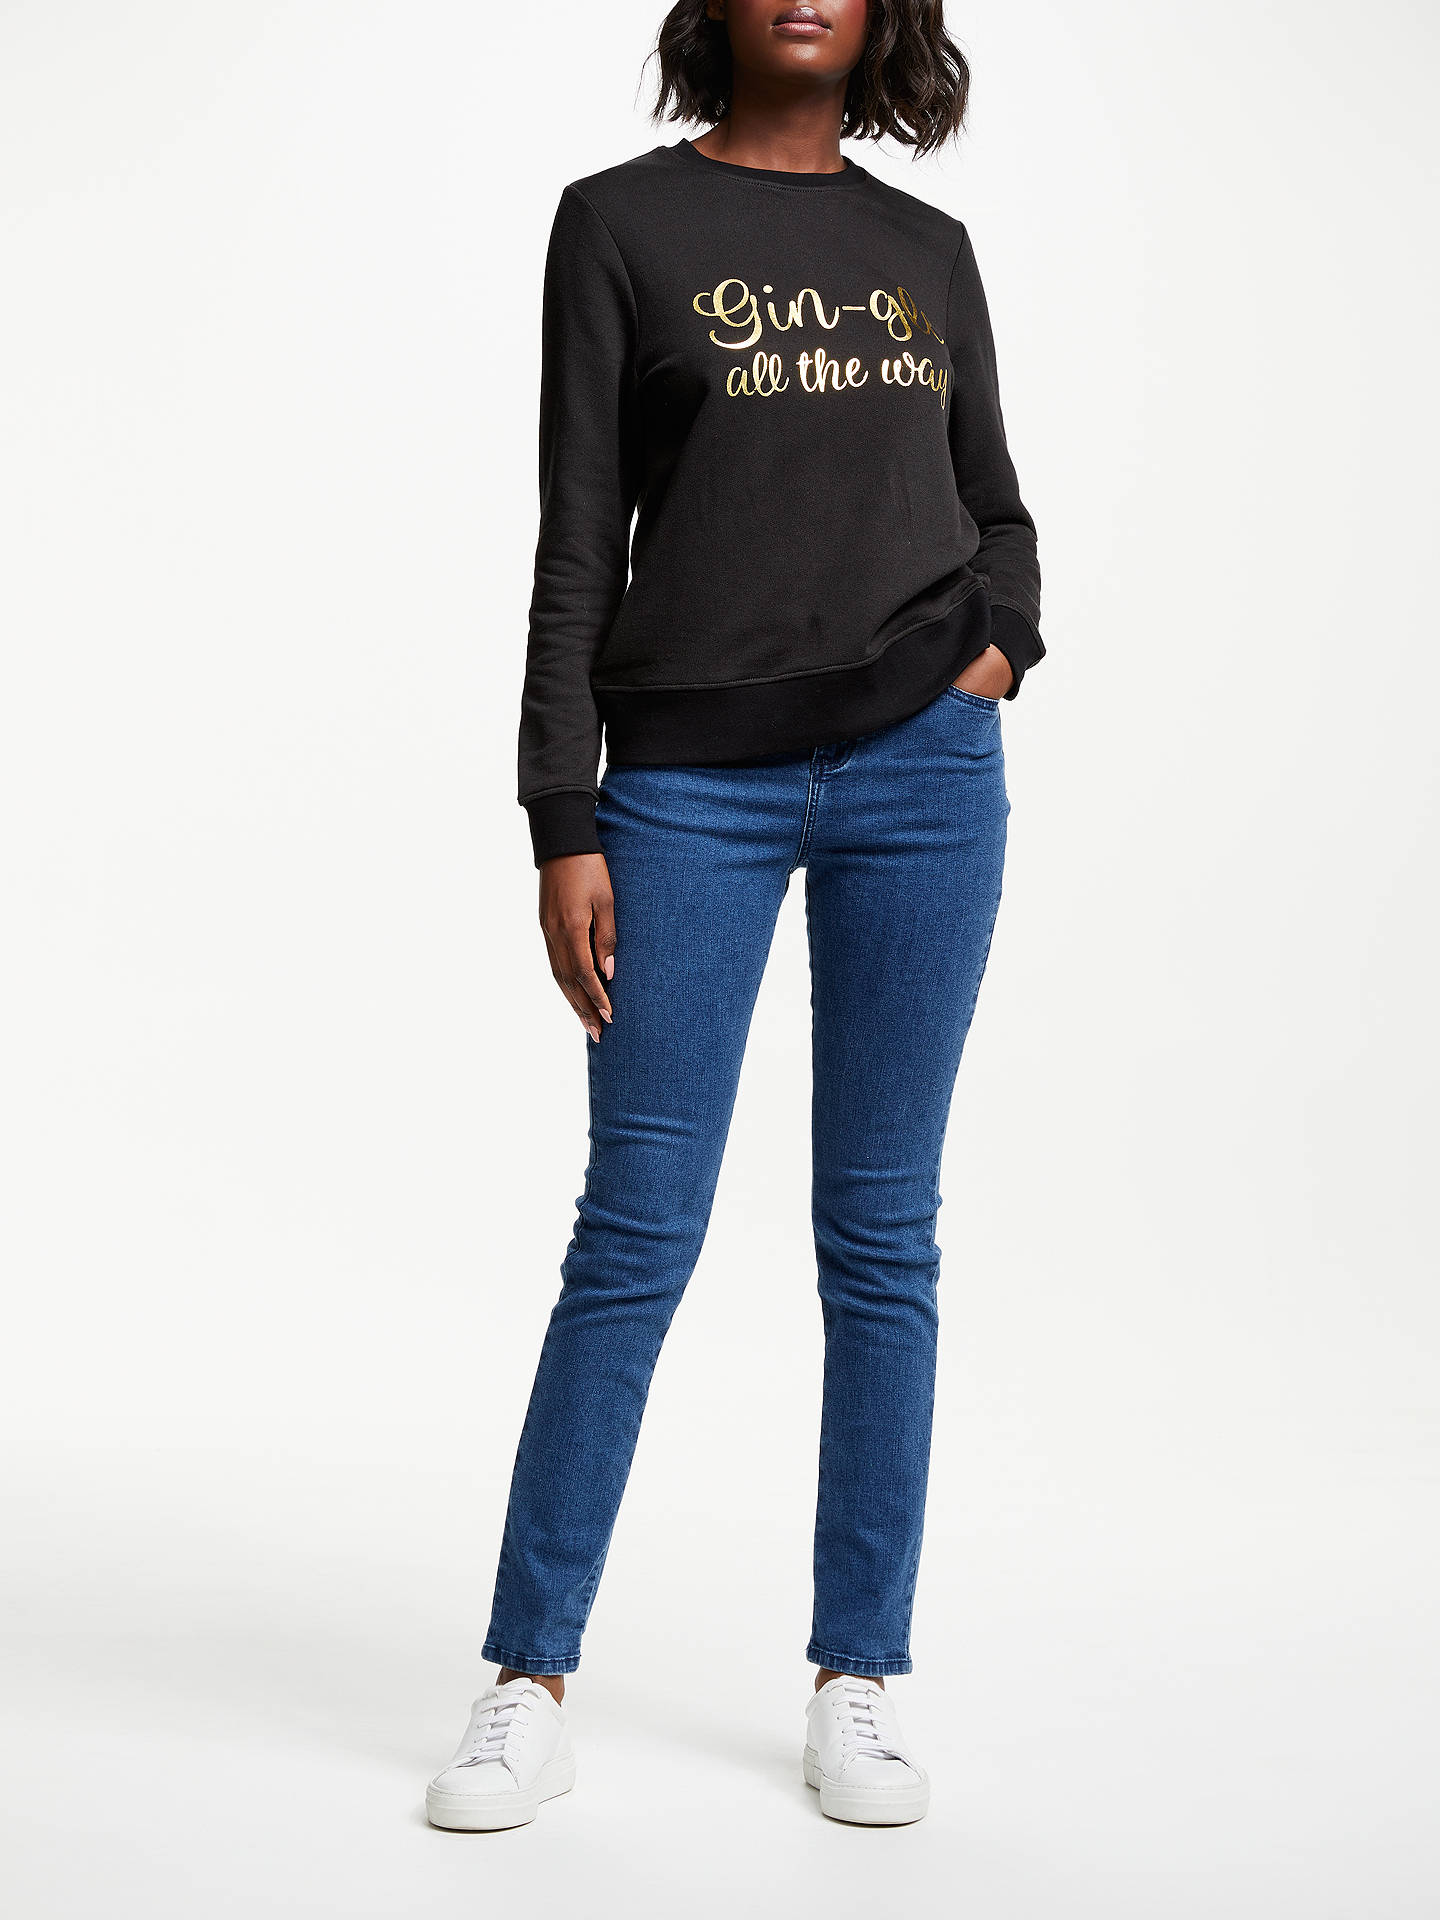 BuyCollection WEEKEND by John Lewis Gin-Gle All The Way Christmas Sweatshirt, Black/Gold, 8 Online at johnlewis.com